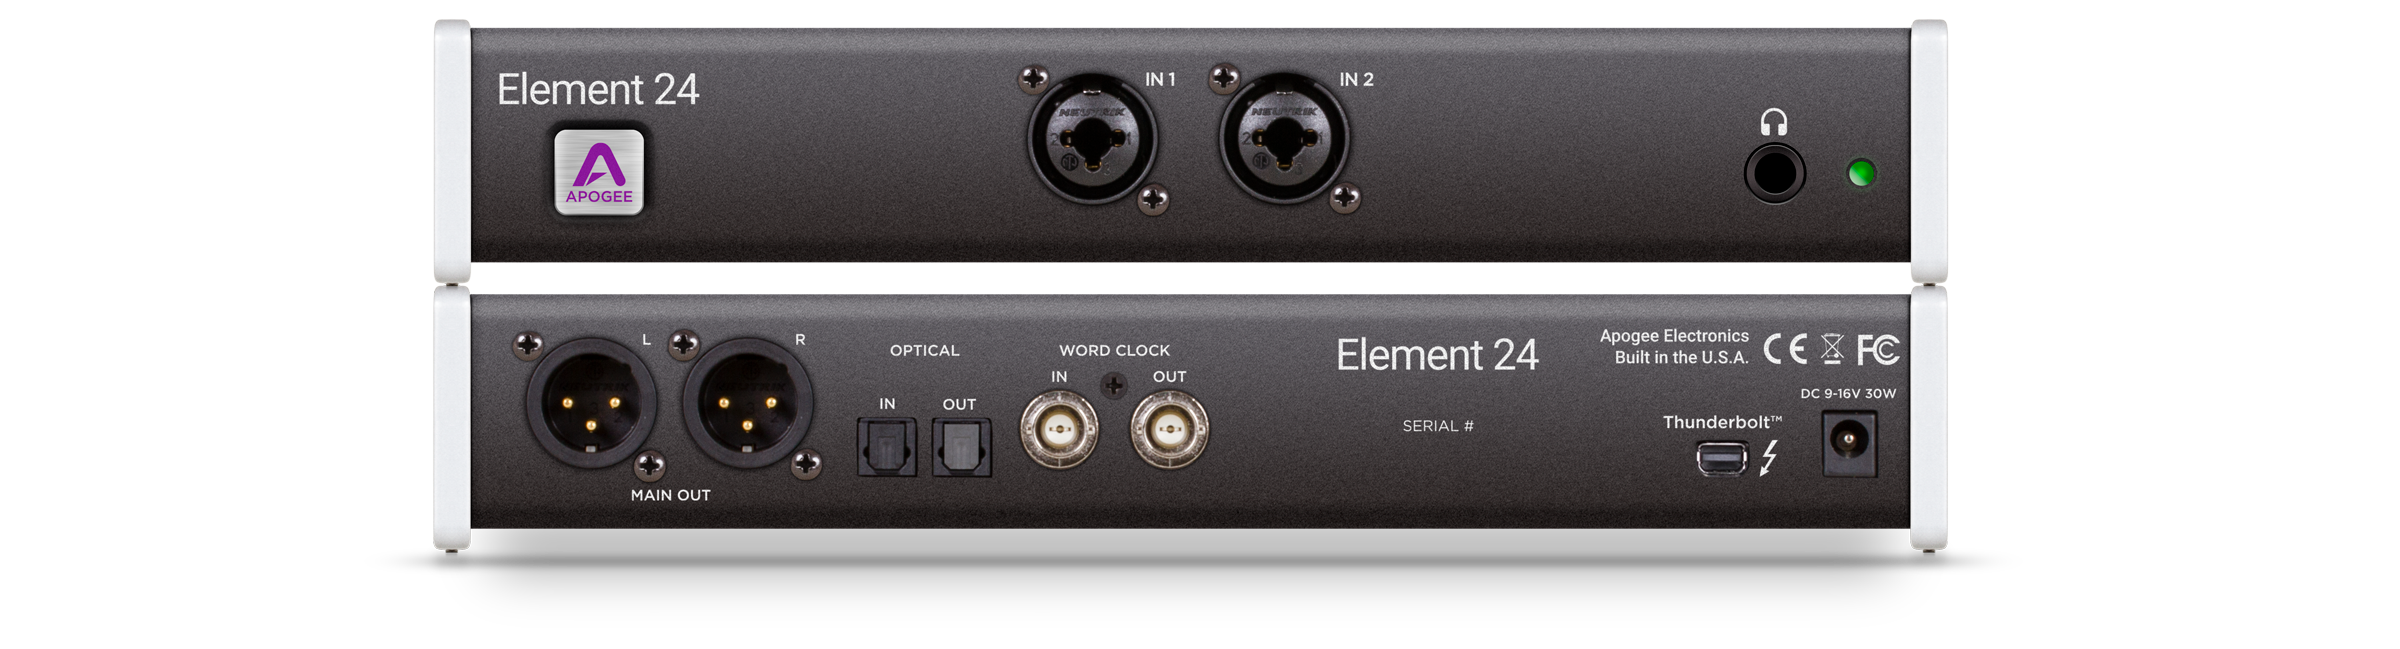 element24-front-rear-straight-2400